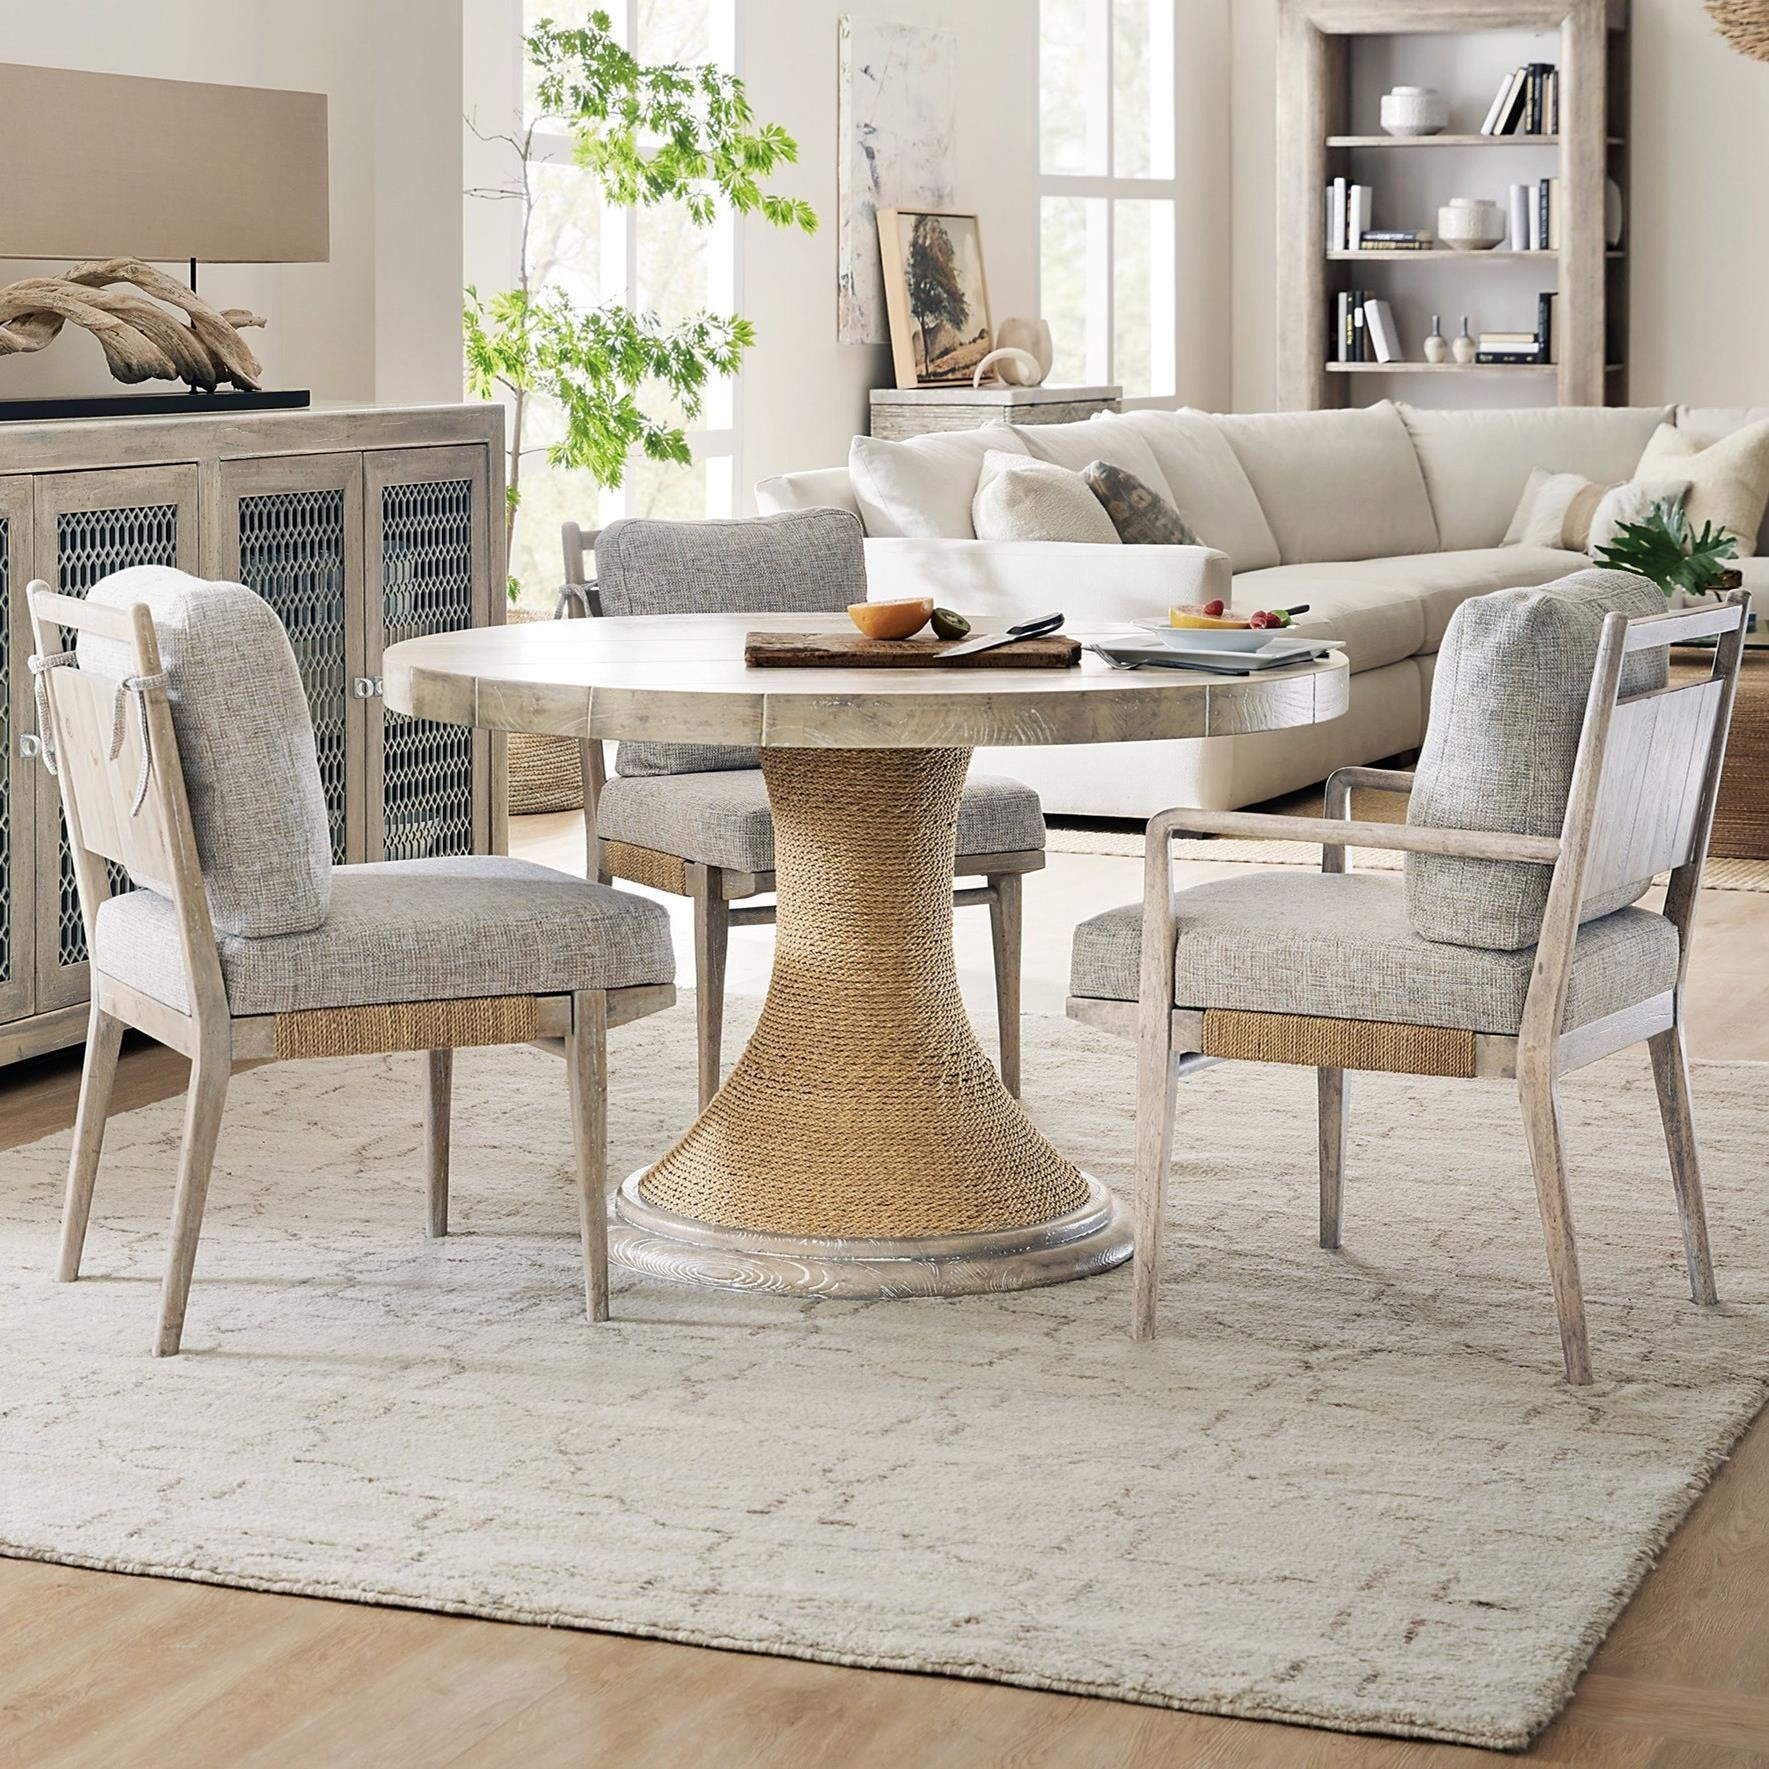 American Life-Amani 4-Piece Table and Chair Set by Hooker Furniture at Fisher Home Furnishings